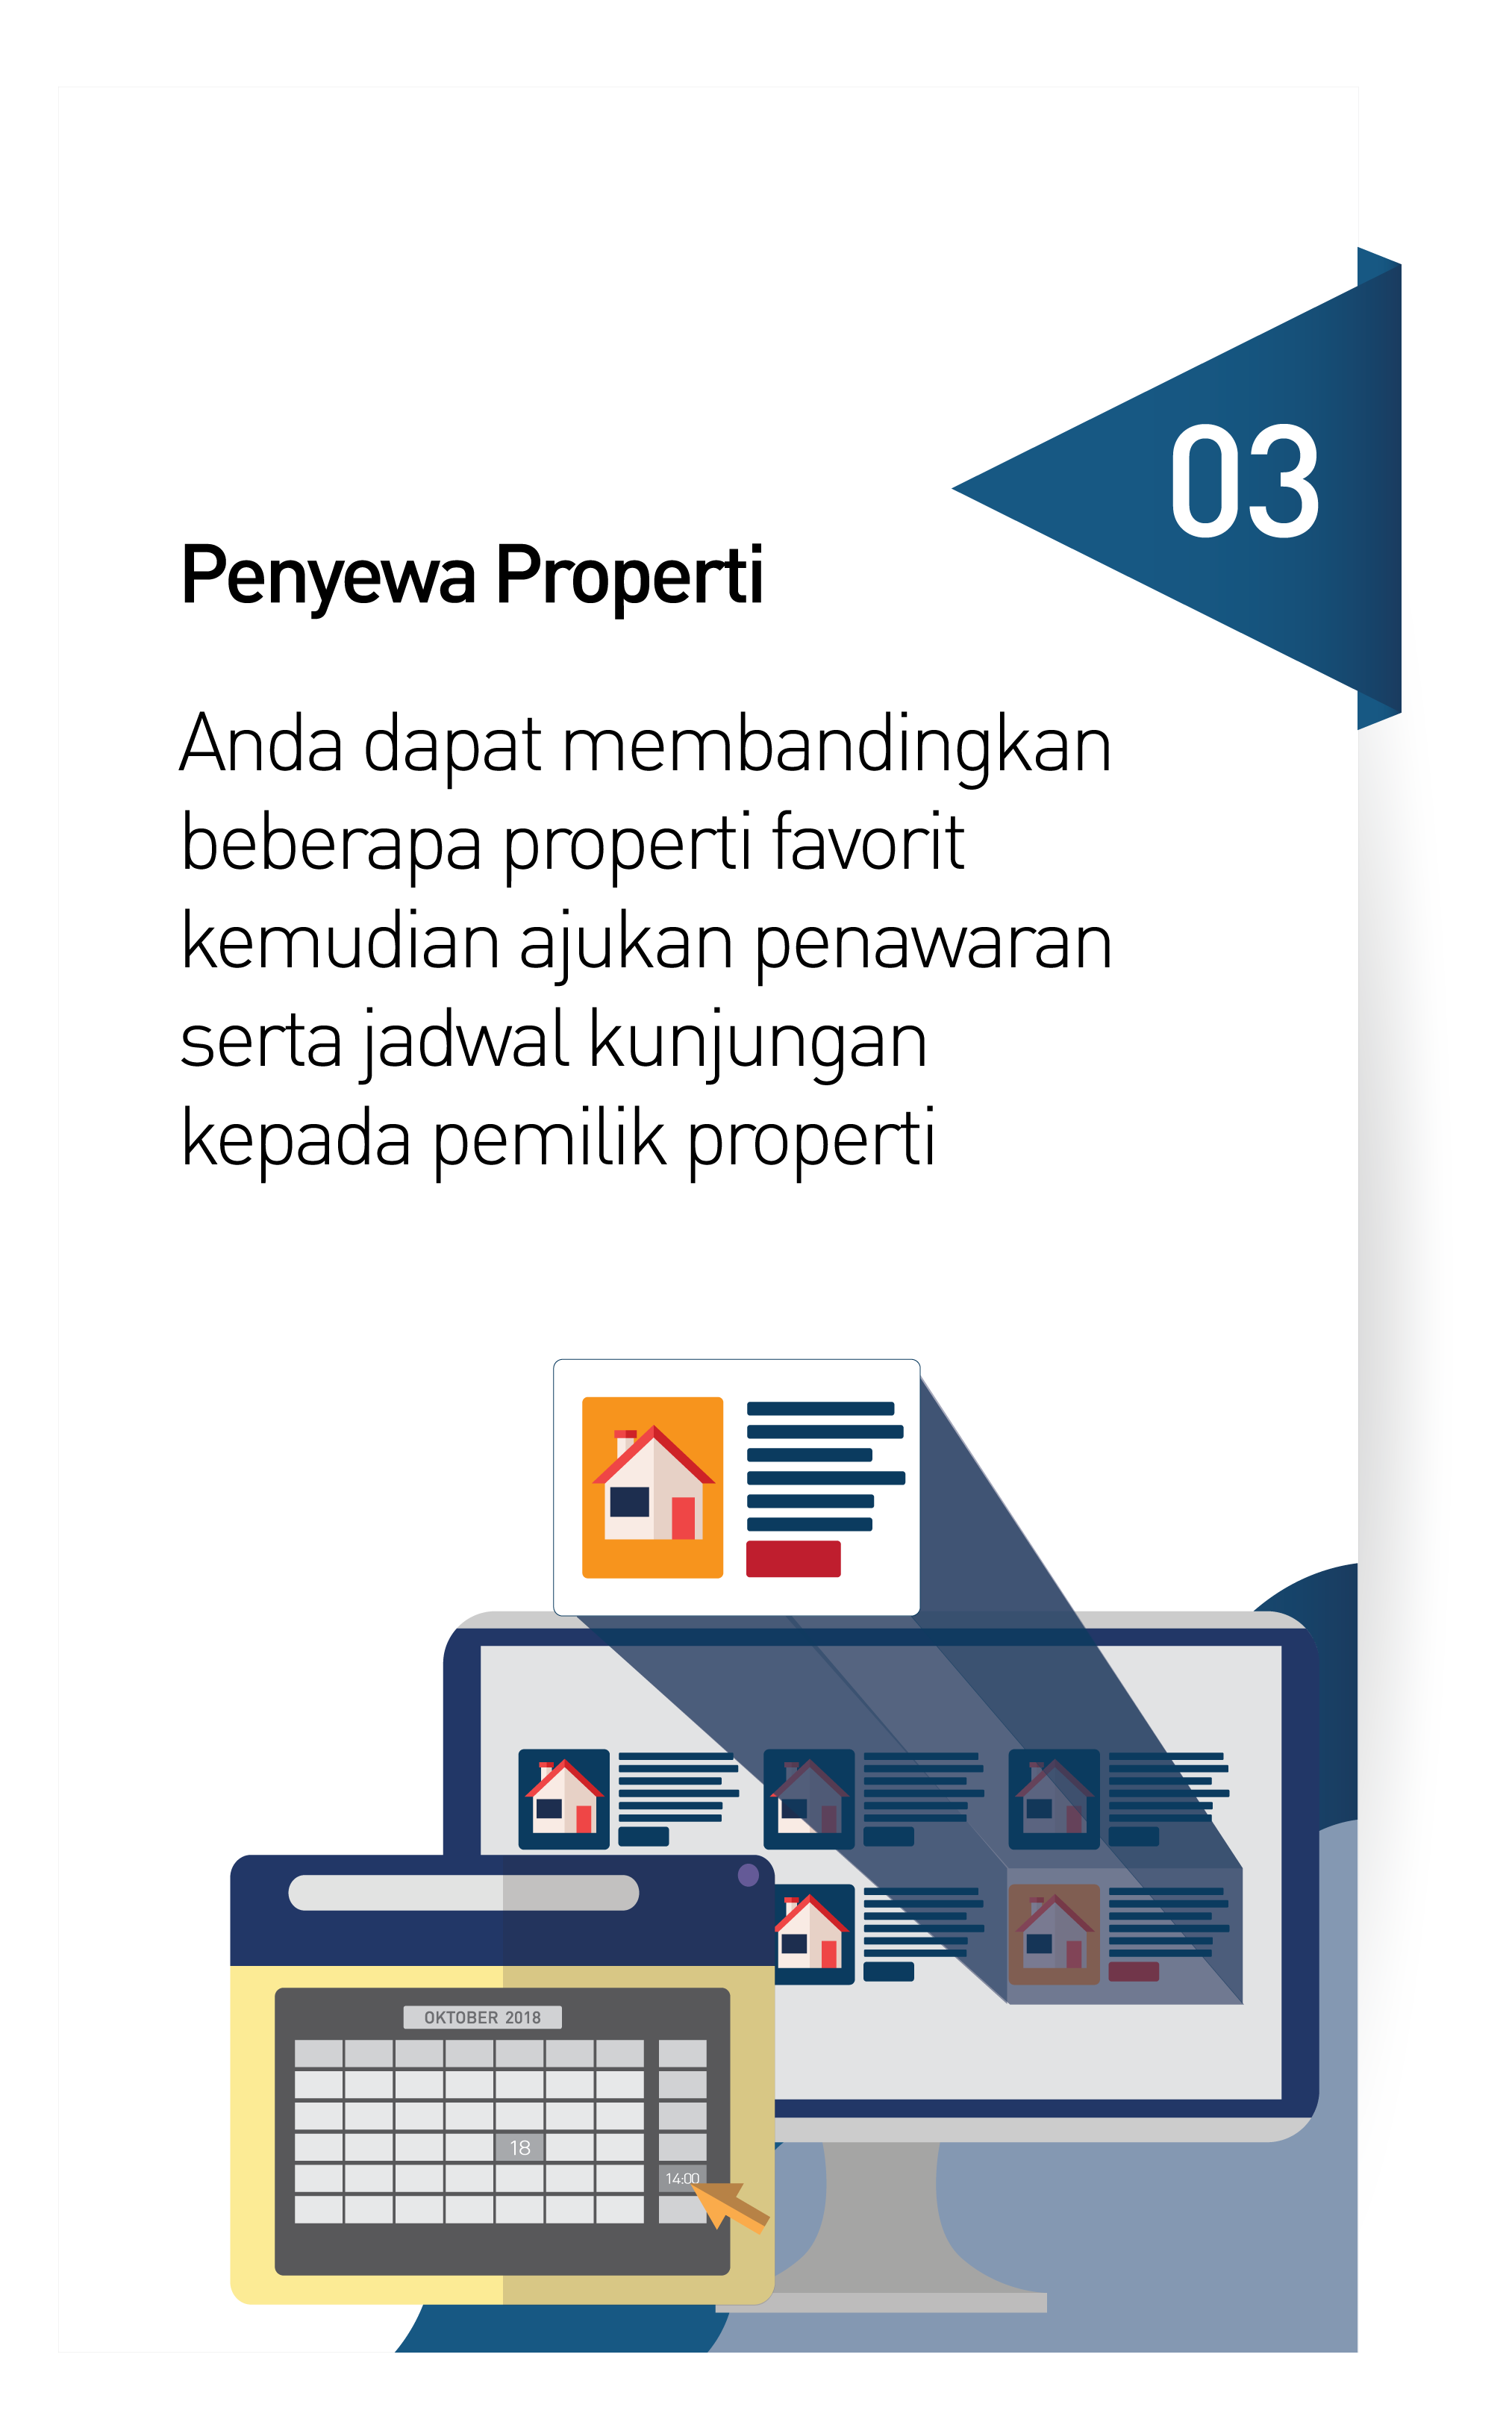 How To Use Rumahsewa.Co Step 3